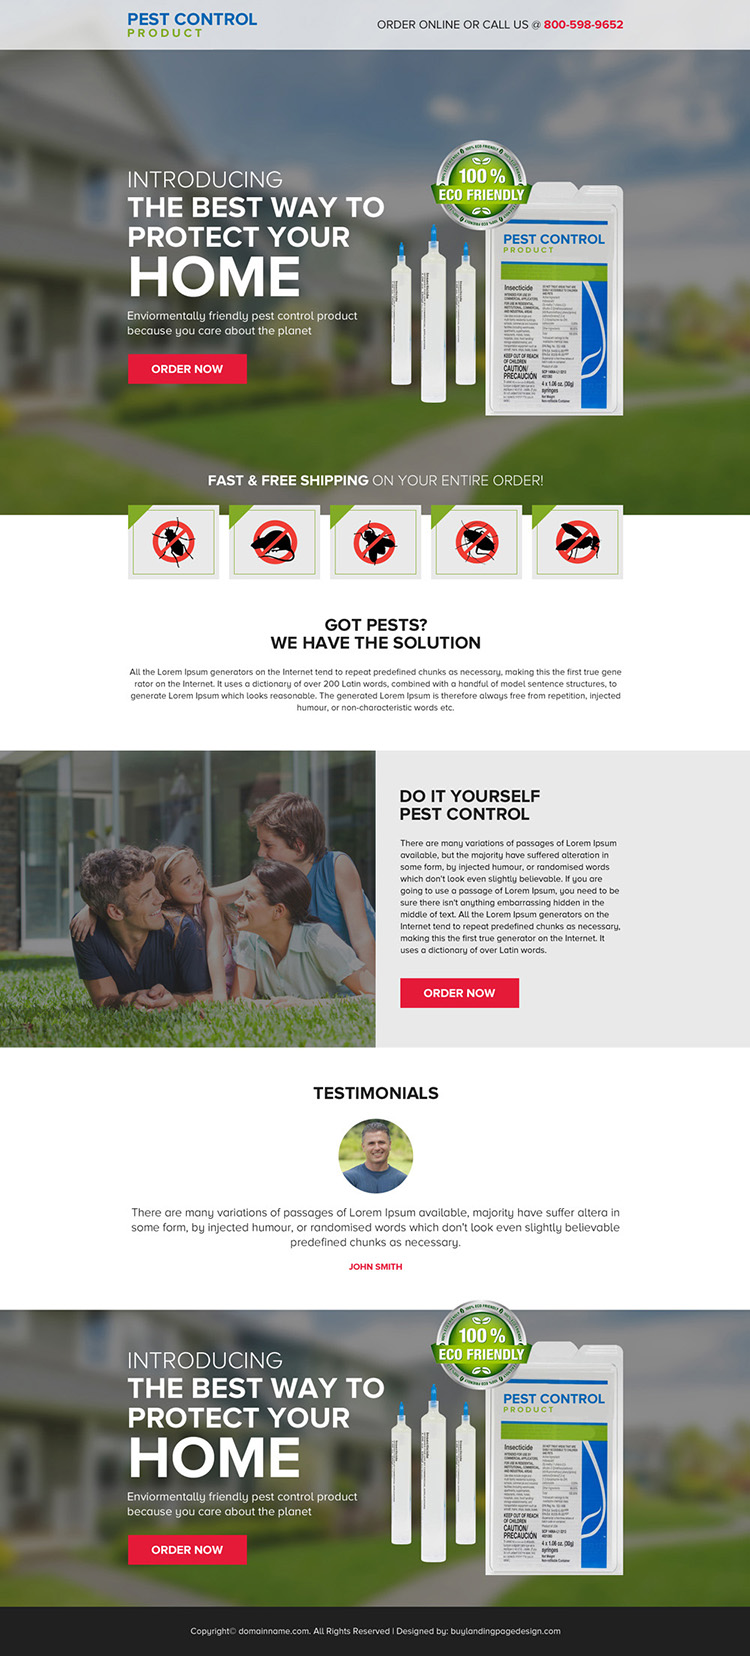 pest control product selling responsive landing page design